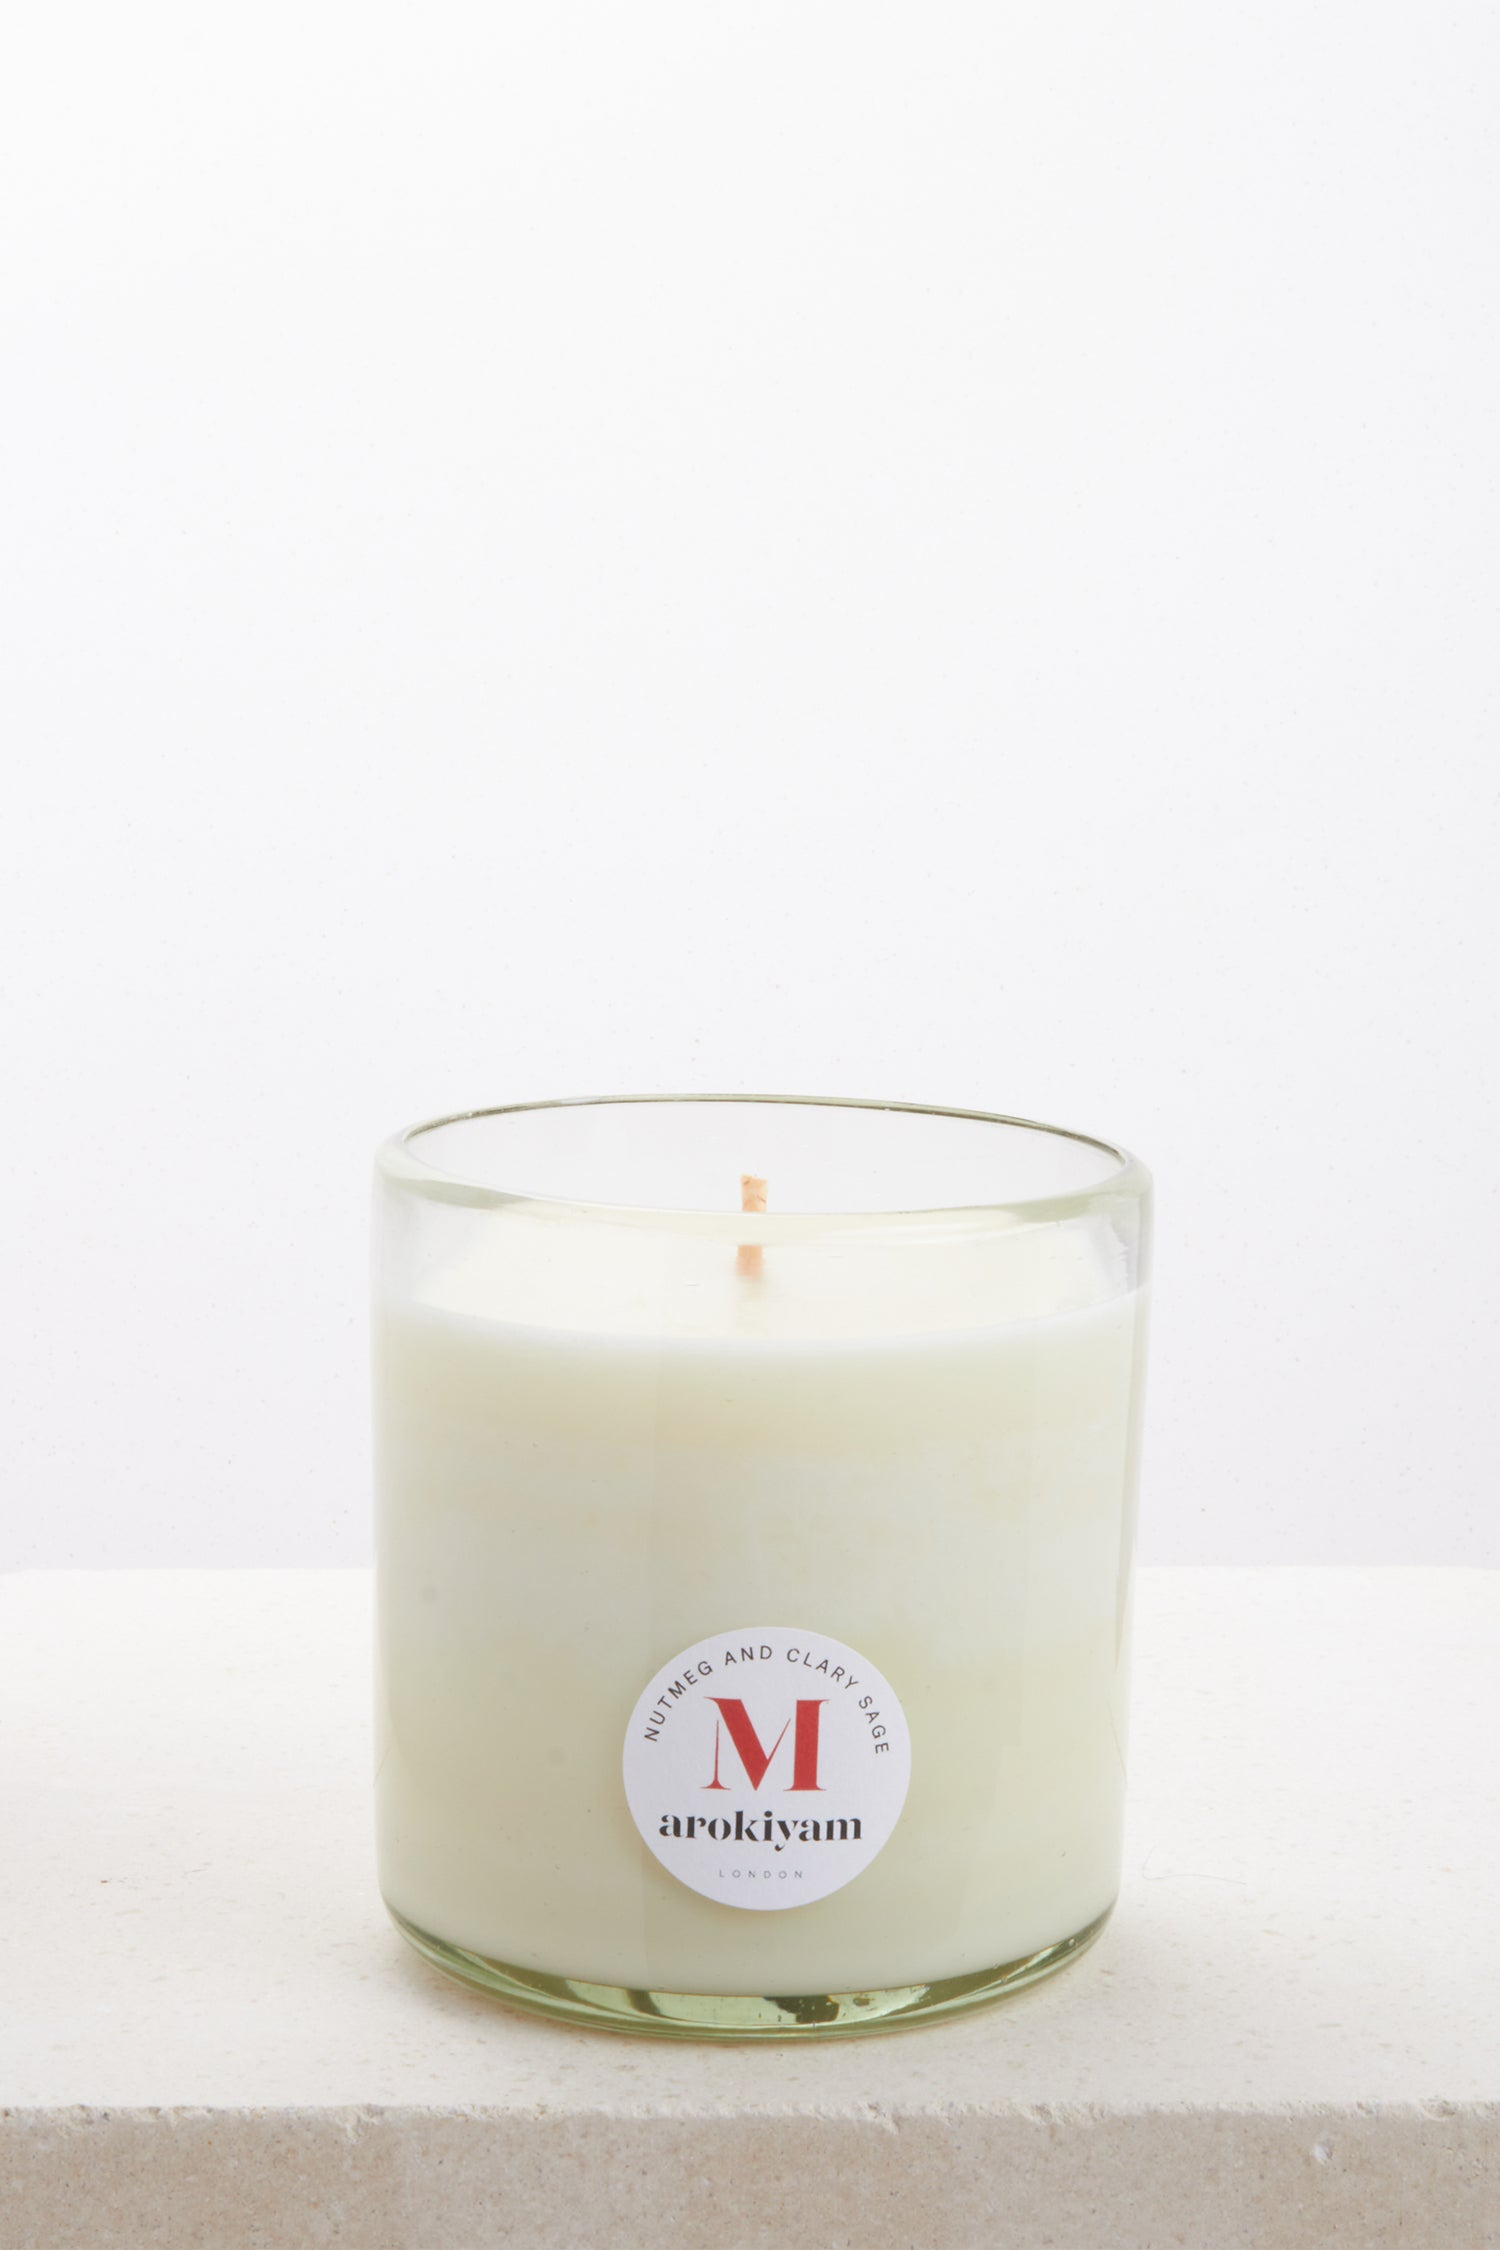 Vegan candle made from a coconut and soy wax and scented with natural nutmeg and clary sage. Made in London.